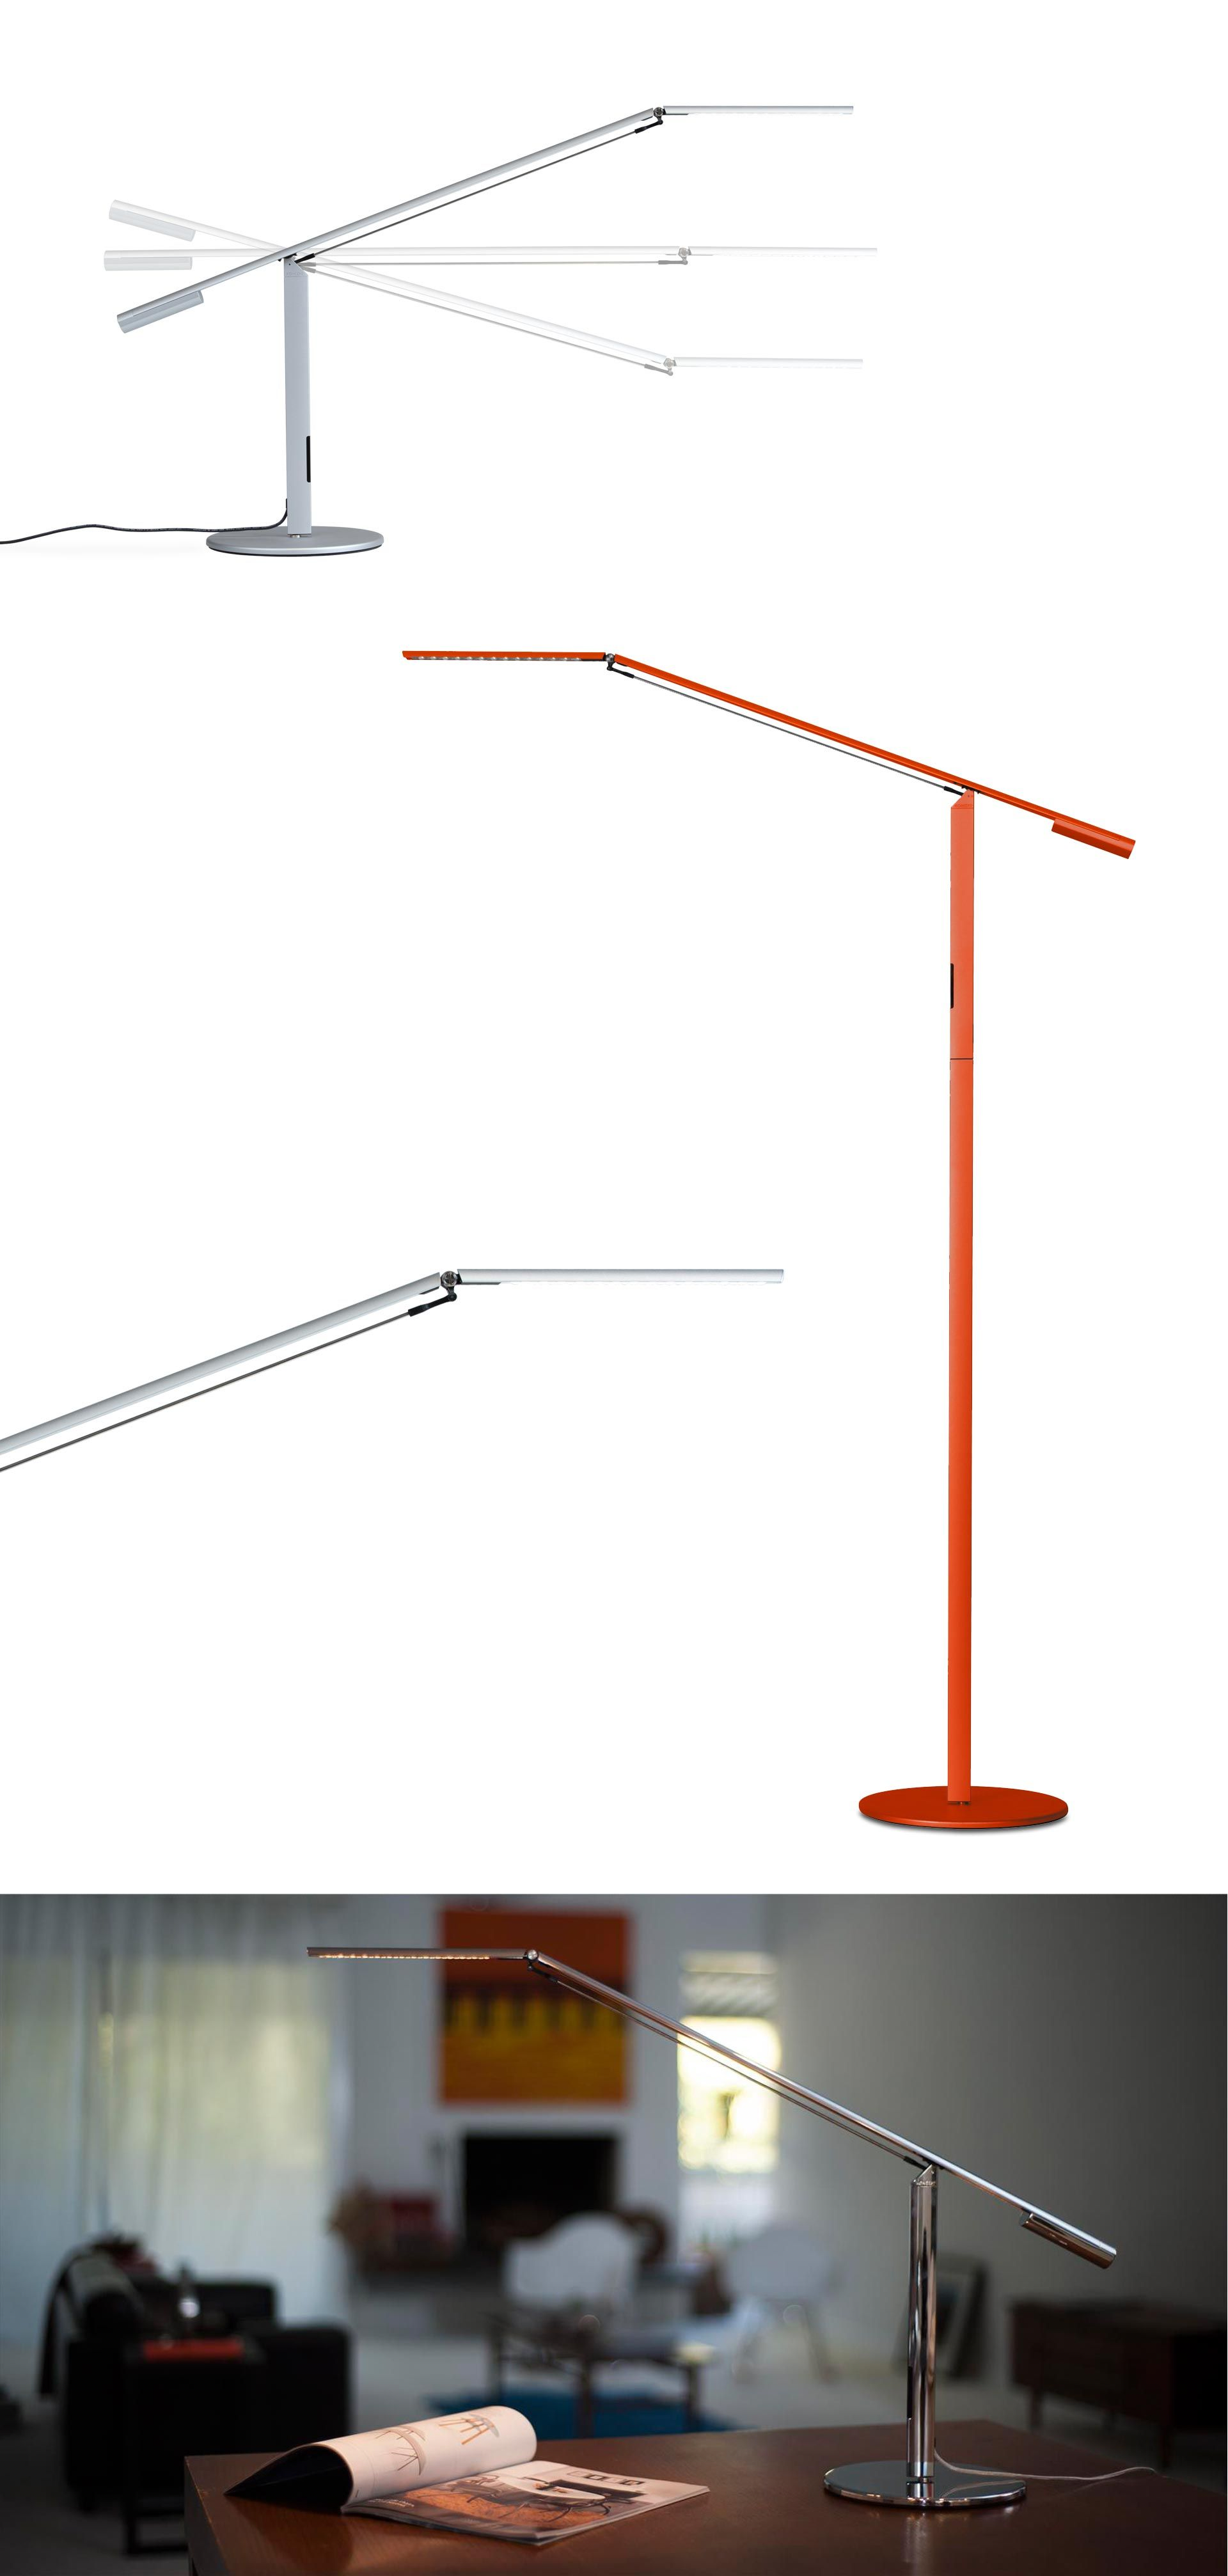 desk lighting solutions. Desk Lighting Solutions. Equo By Koncept Solutions T A